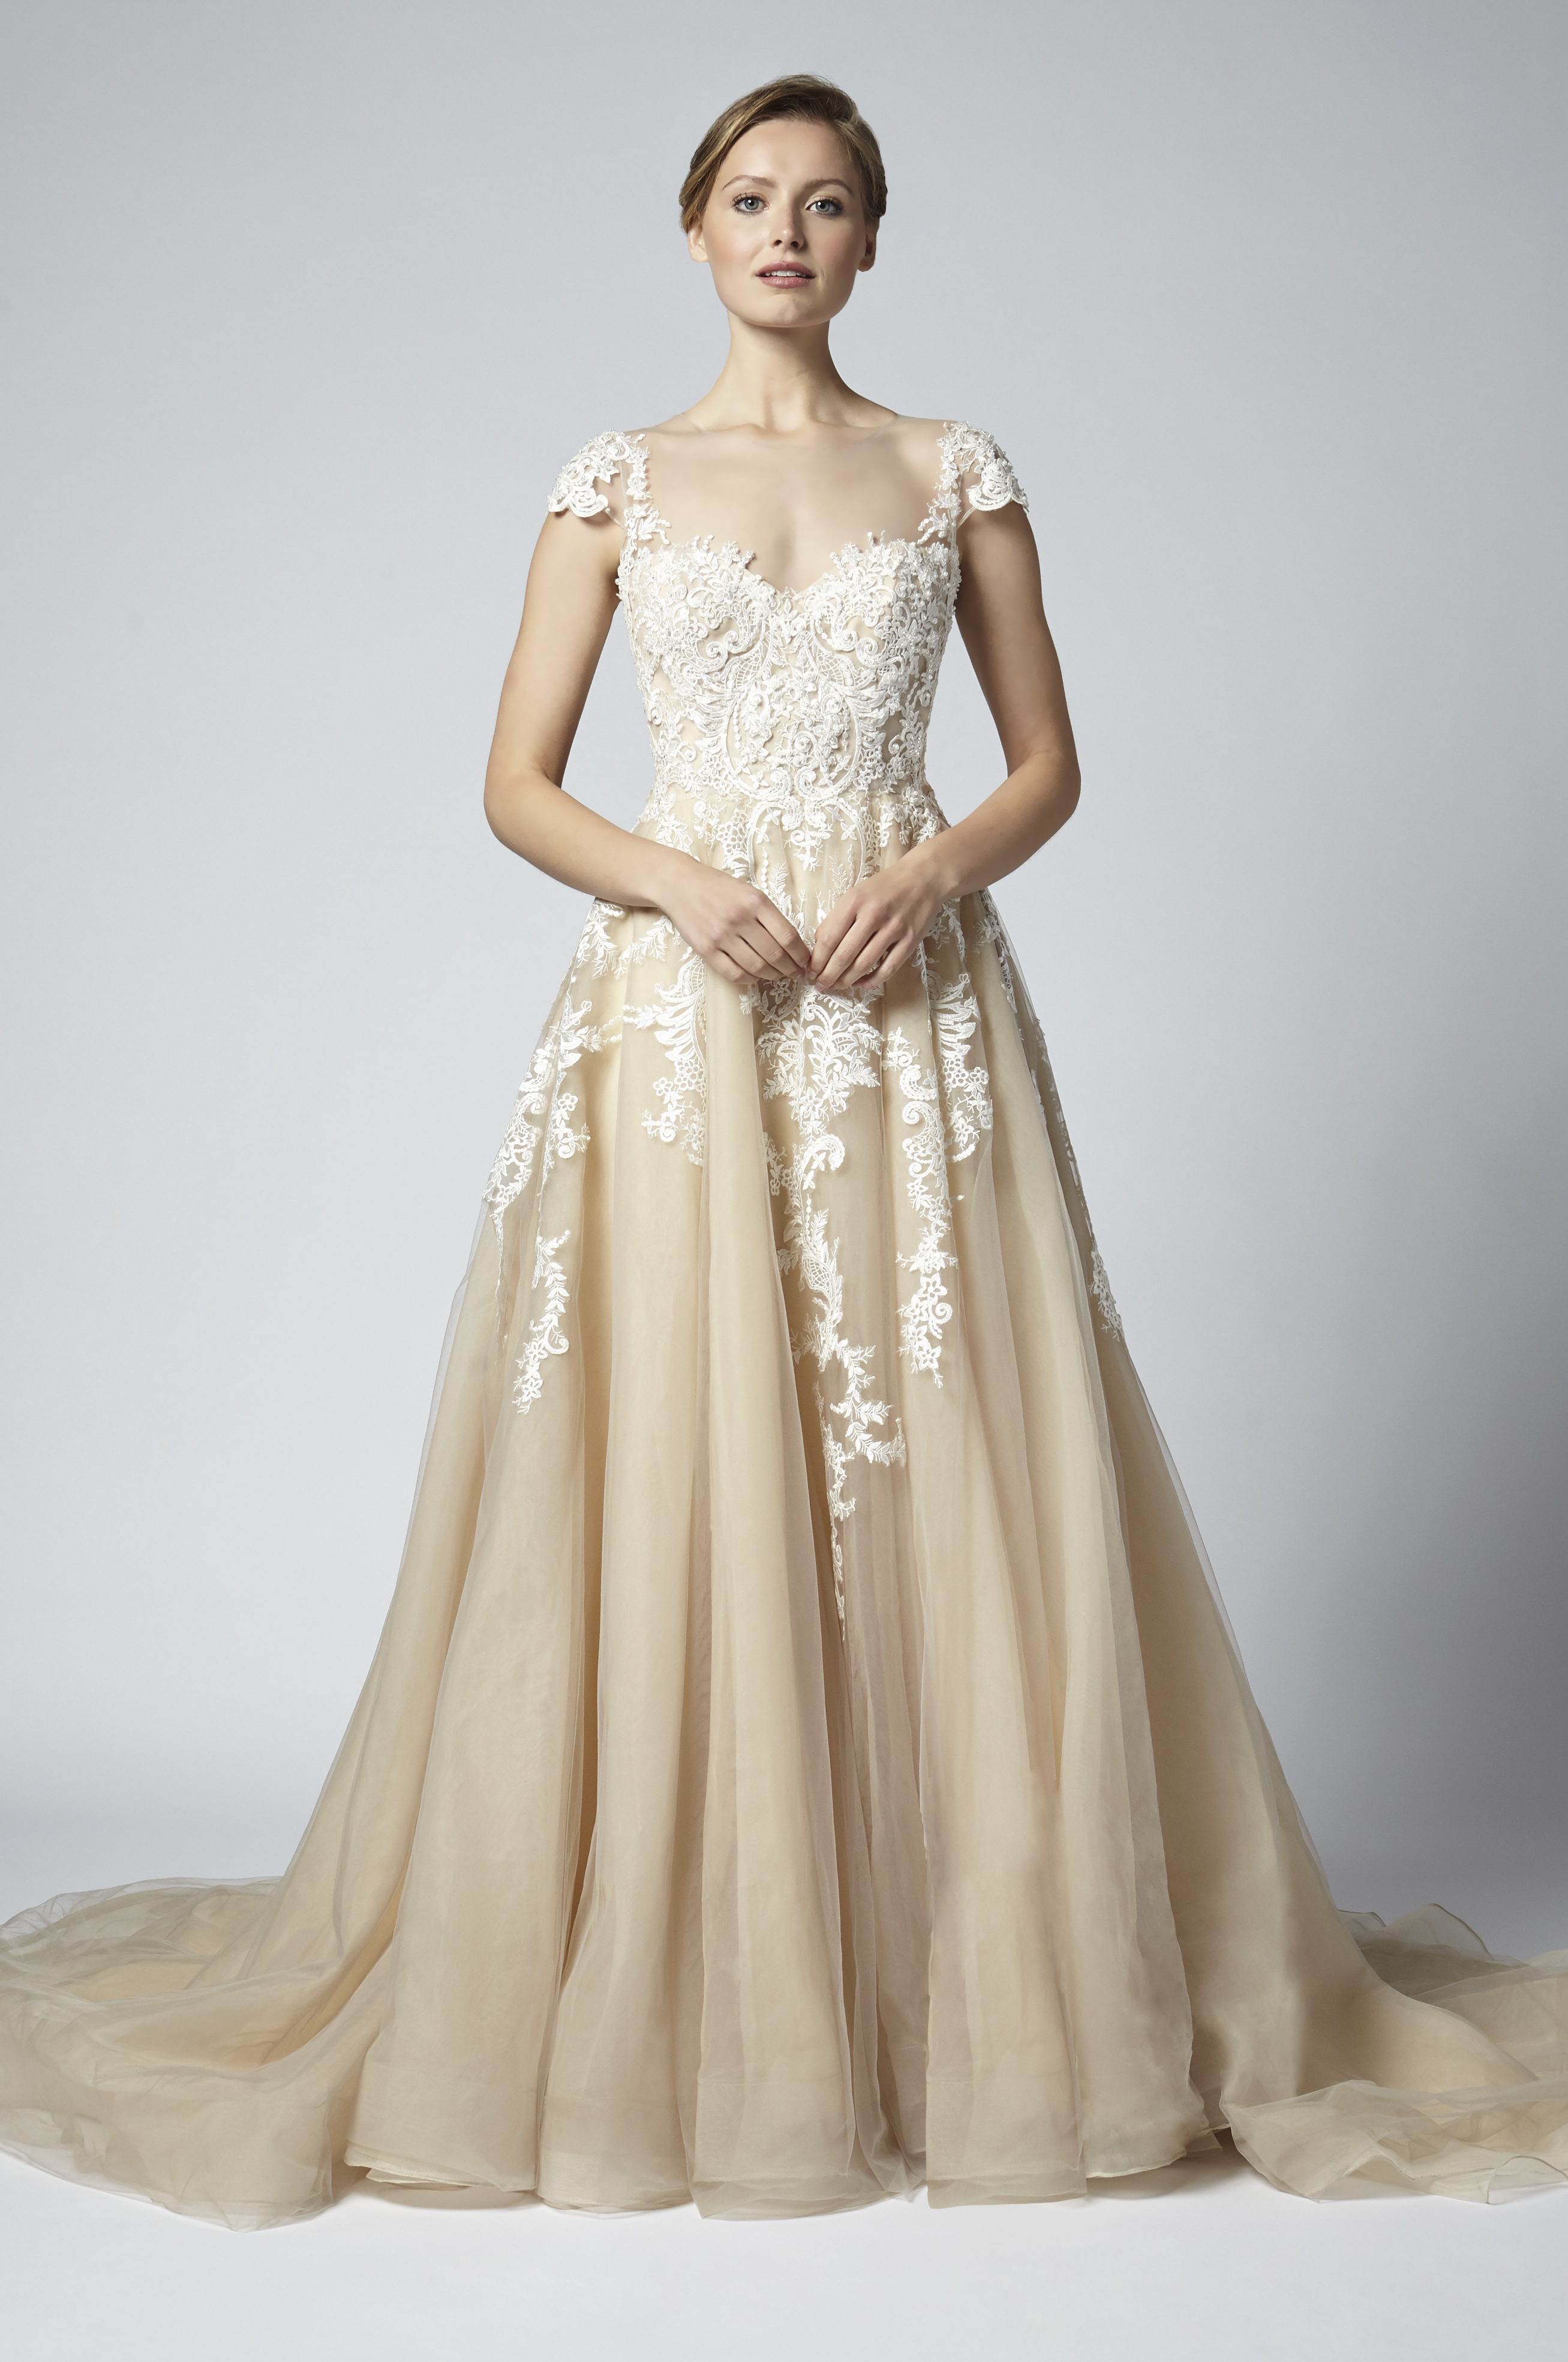 Champagne A-line Embroidered Wedding Dress With Illusion Neckline